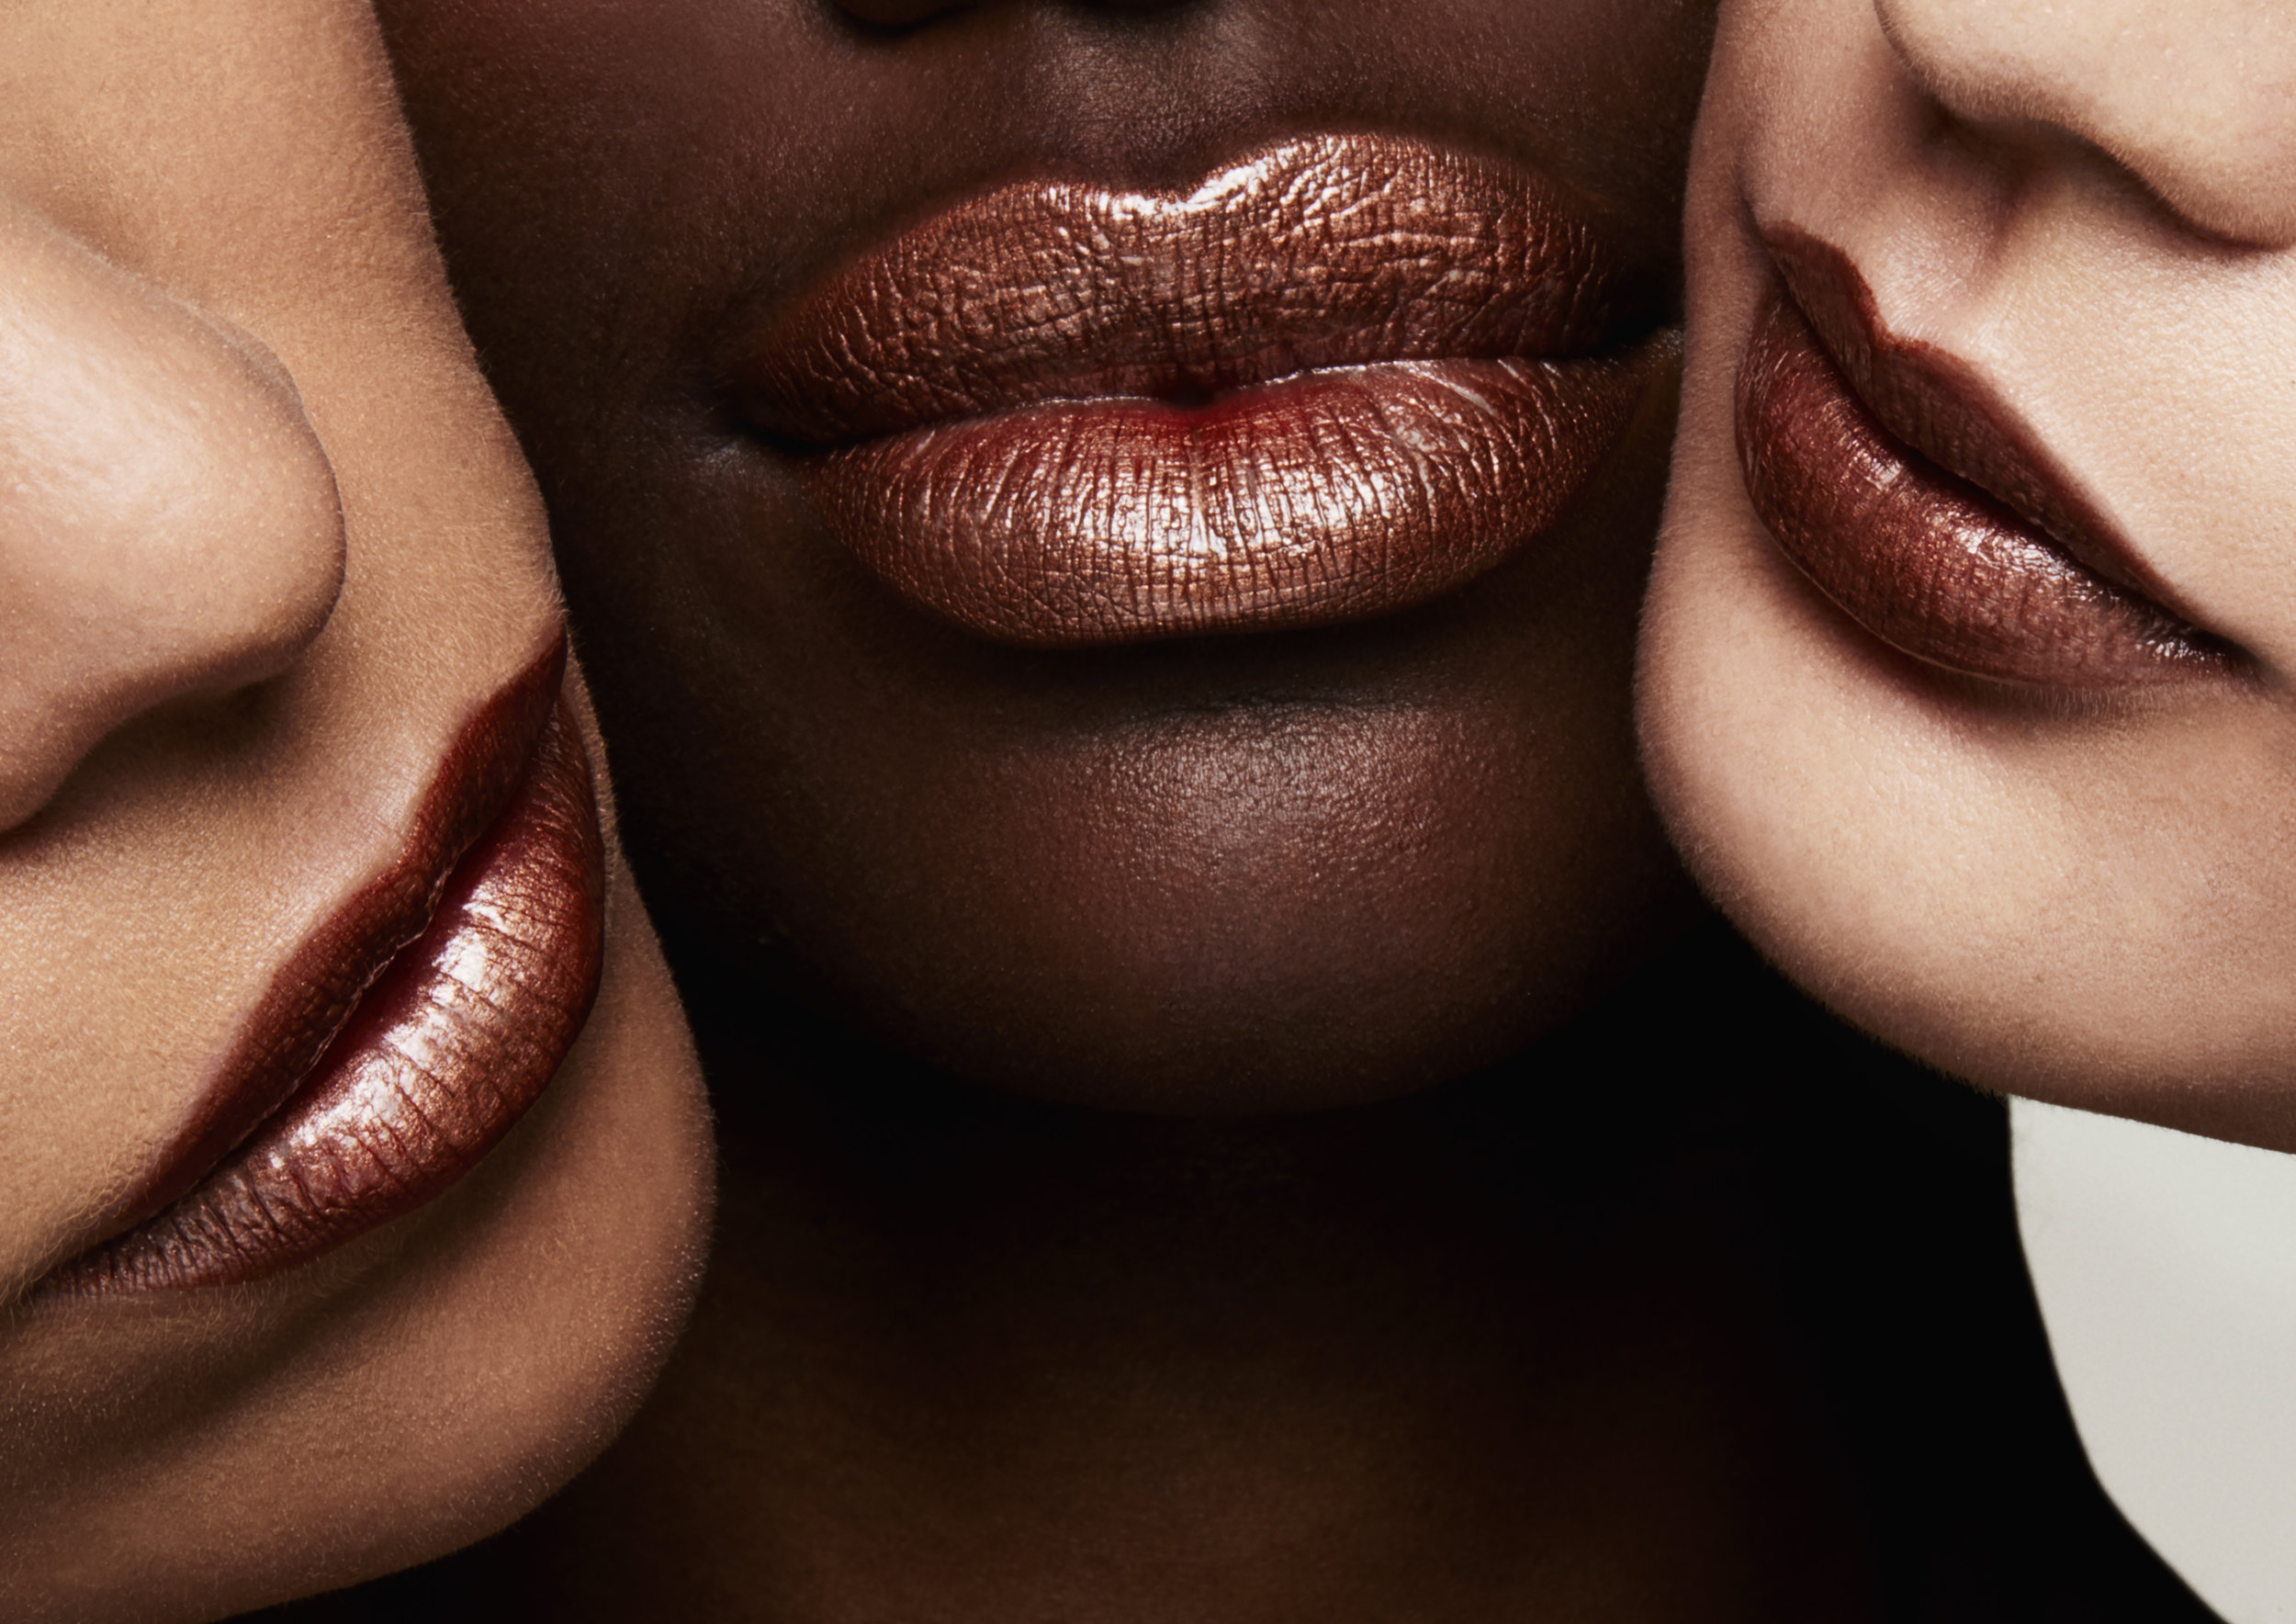 BeautyPhotography_TomFordBeauty_LipstickEditorial_By_BriJohnson_0018.jpg